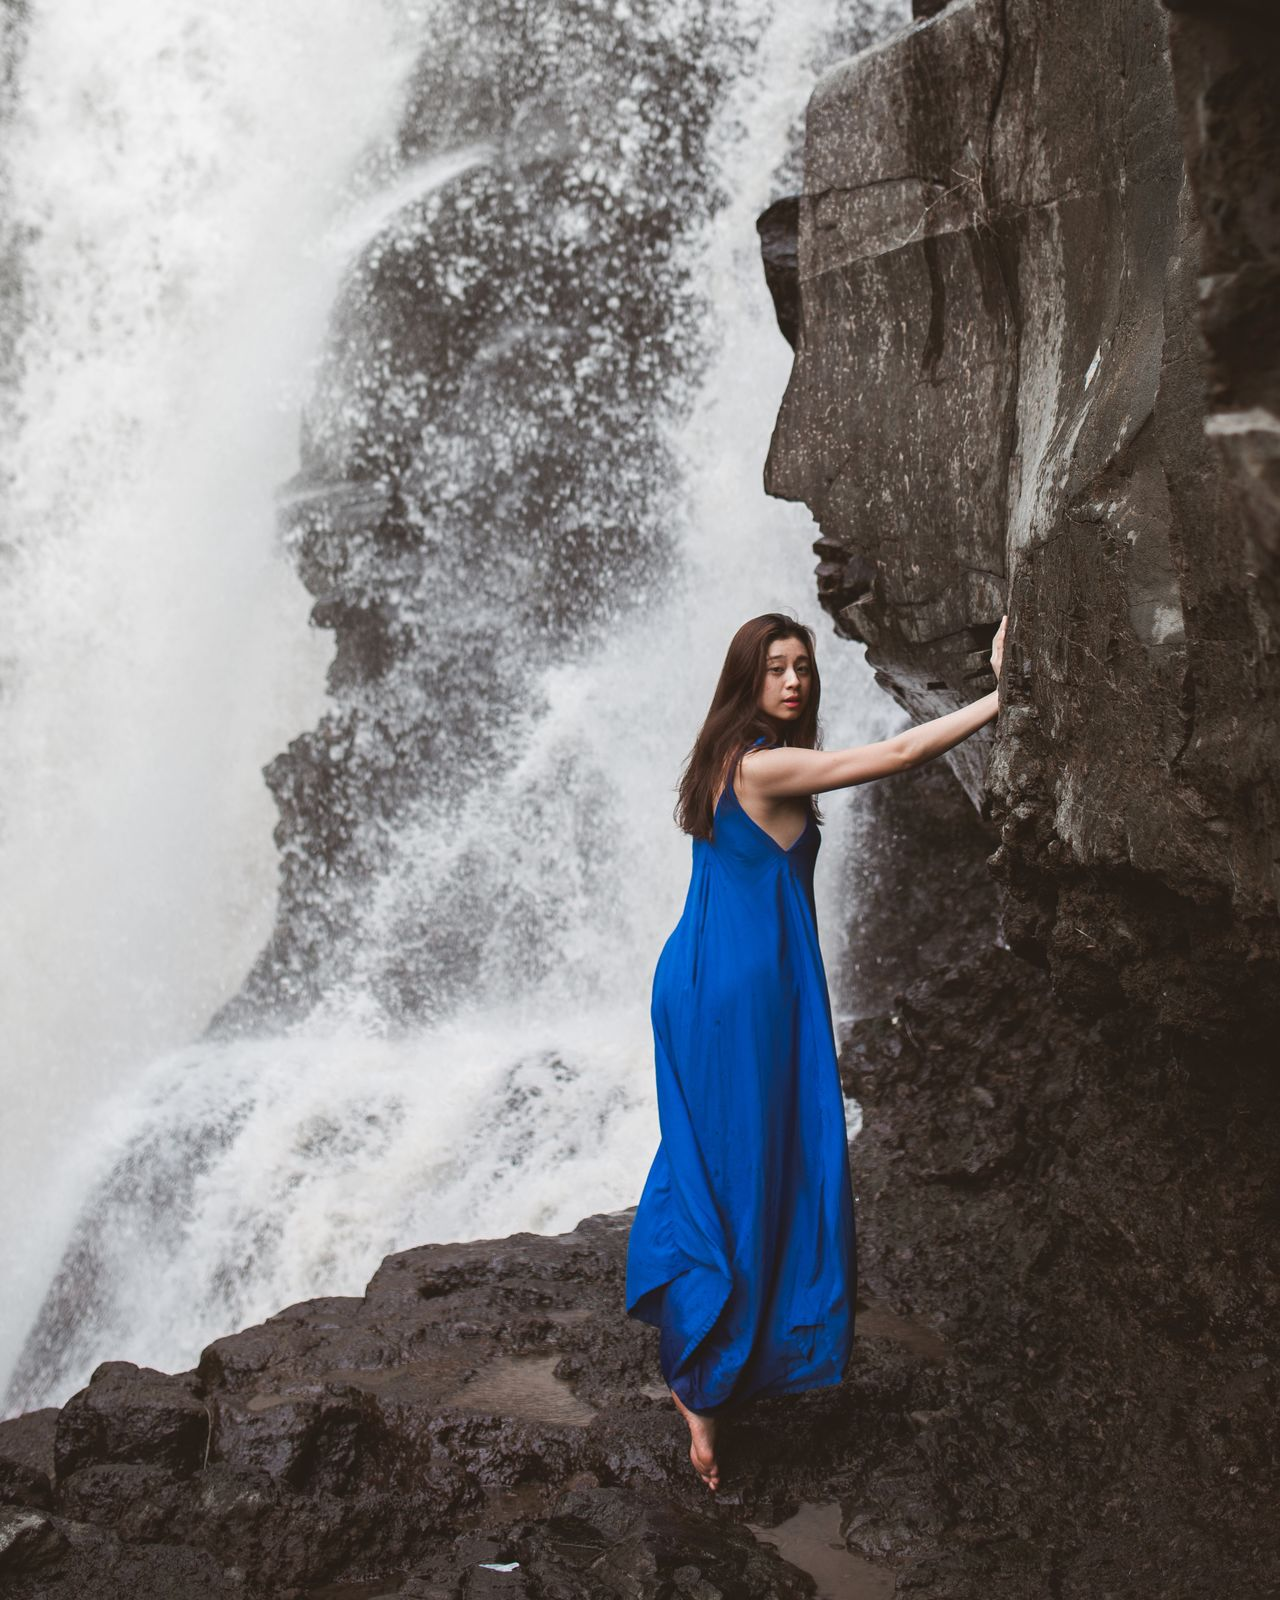 run on forever Beautiful People Beauty In Nature Outdoors Portrait Of A Woman Natural Light Portrait Women Of EyeEm Portrait Of A Girl Fine Art Photography Portrait Photography Portraits Of EyeEm Blue Girl Waterfall Water_collection Tukad Cepung Bali Bali, Indonesia Travel